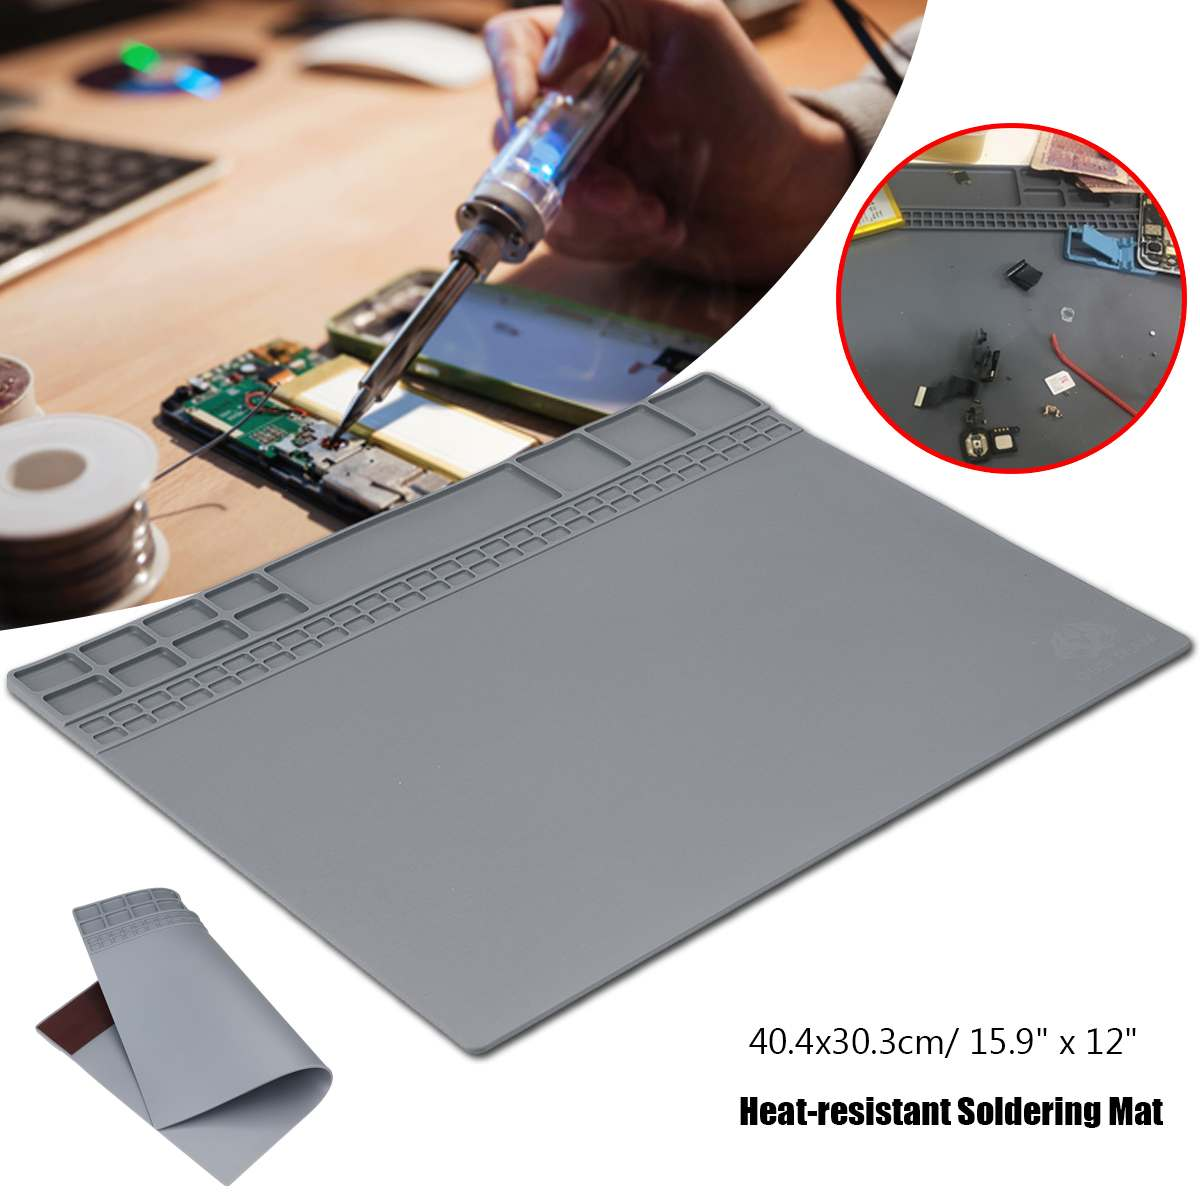 Soldering Station Soldering Pad Heat Resistant Silicone Heat Insulation Pad Repair Tools Maintenance Platform Desk Mat